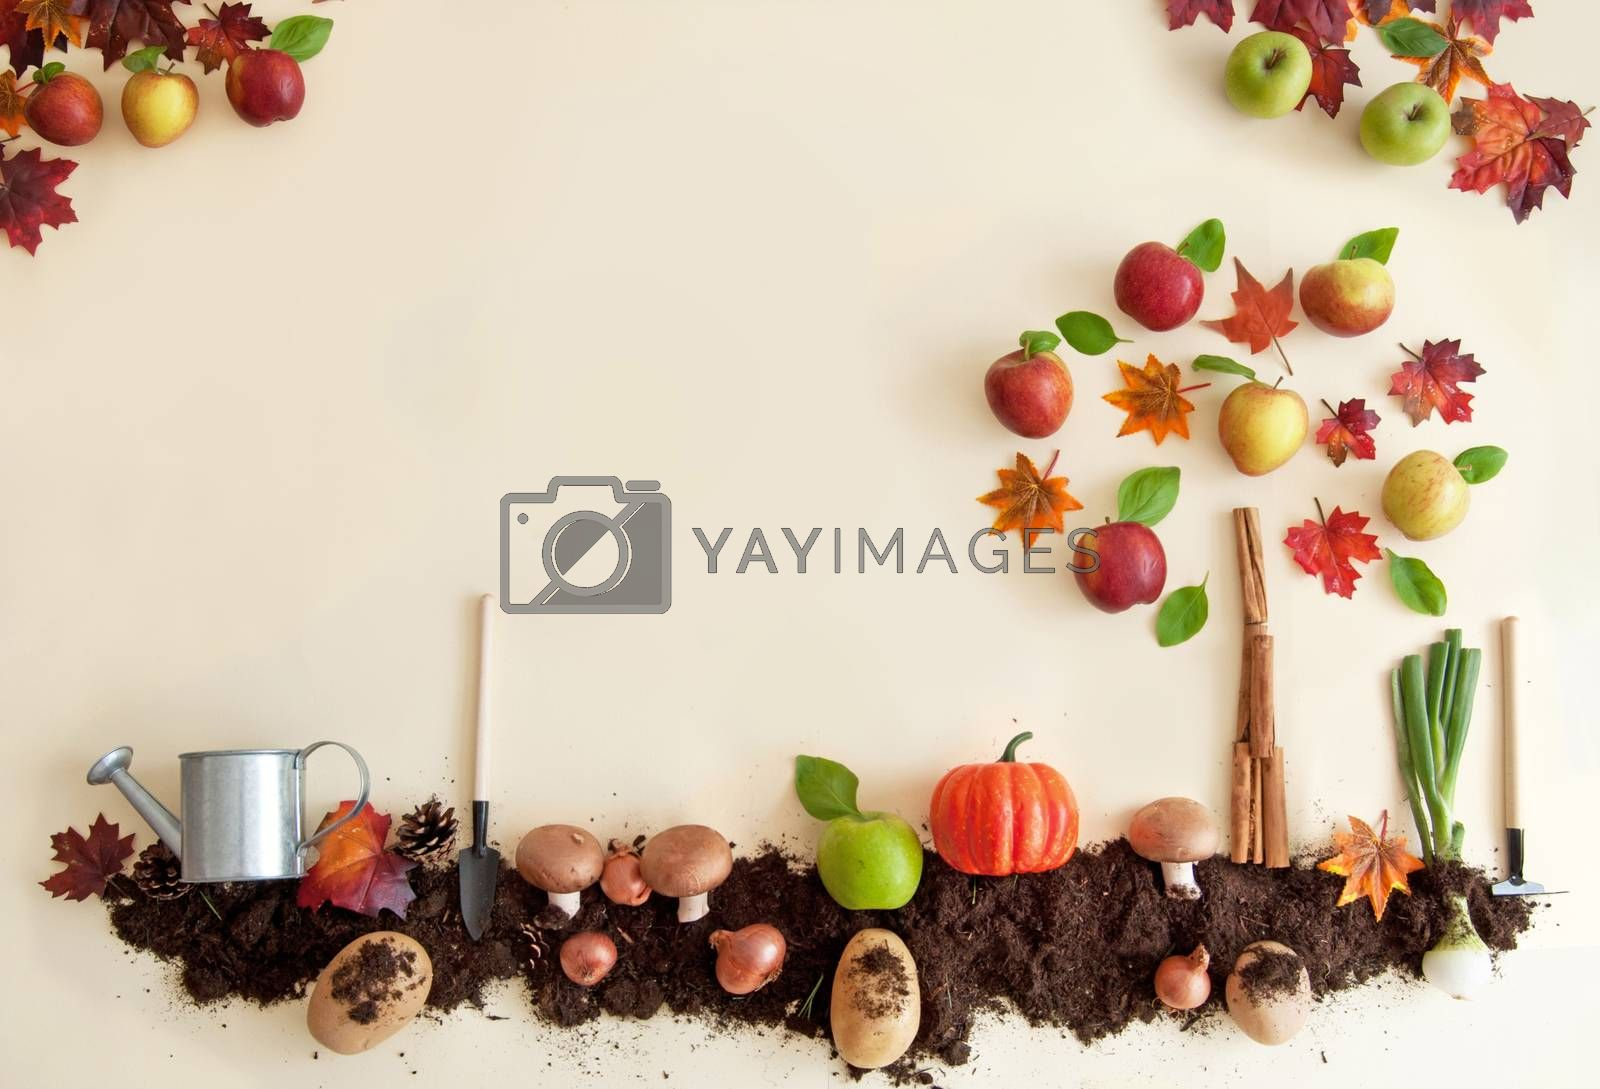 Royalty free image of Autumn fruit and vegetable garden by unikpix